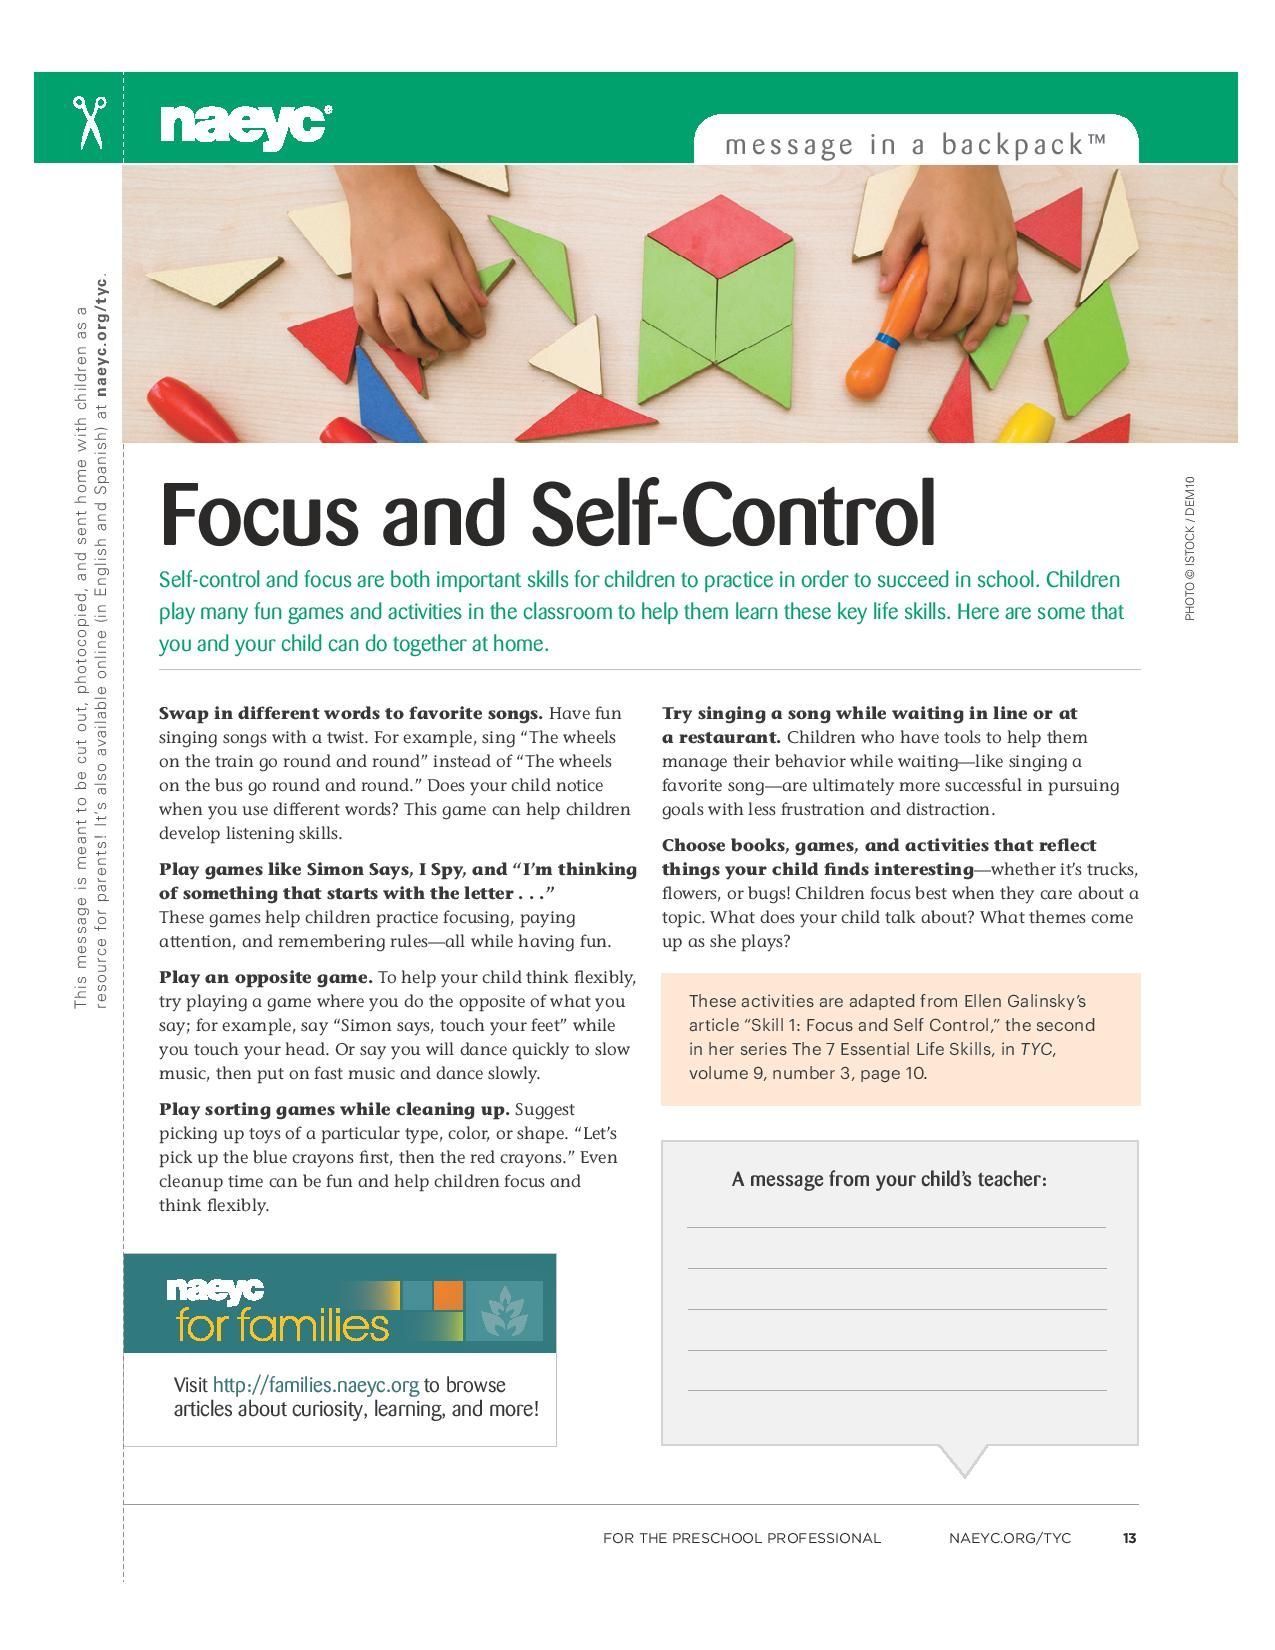 Self Control And Focus Are Both Important Skills For